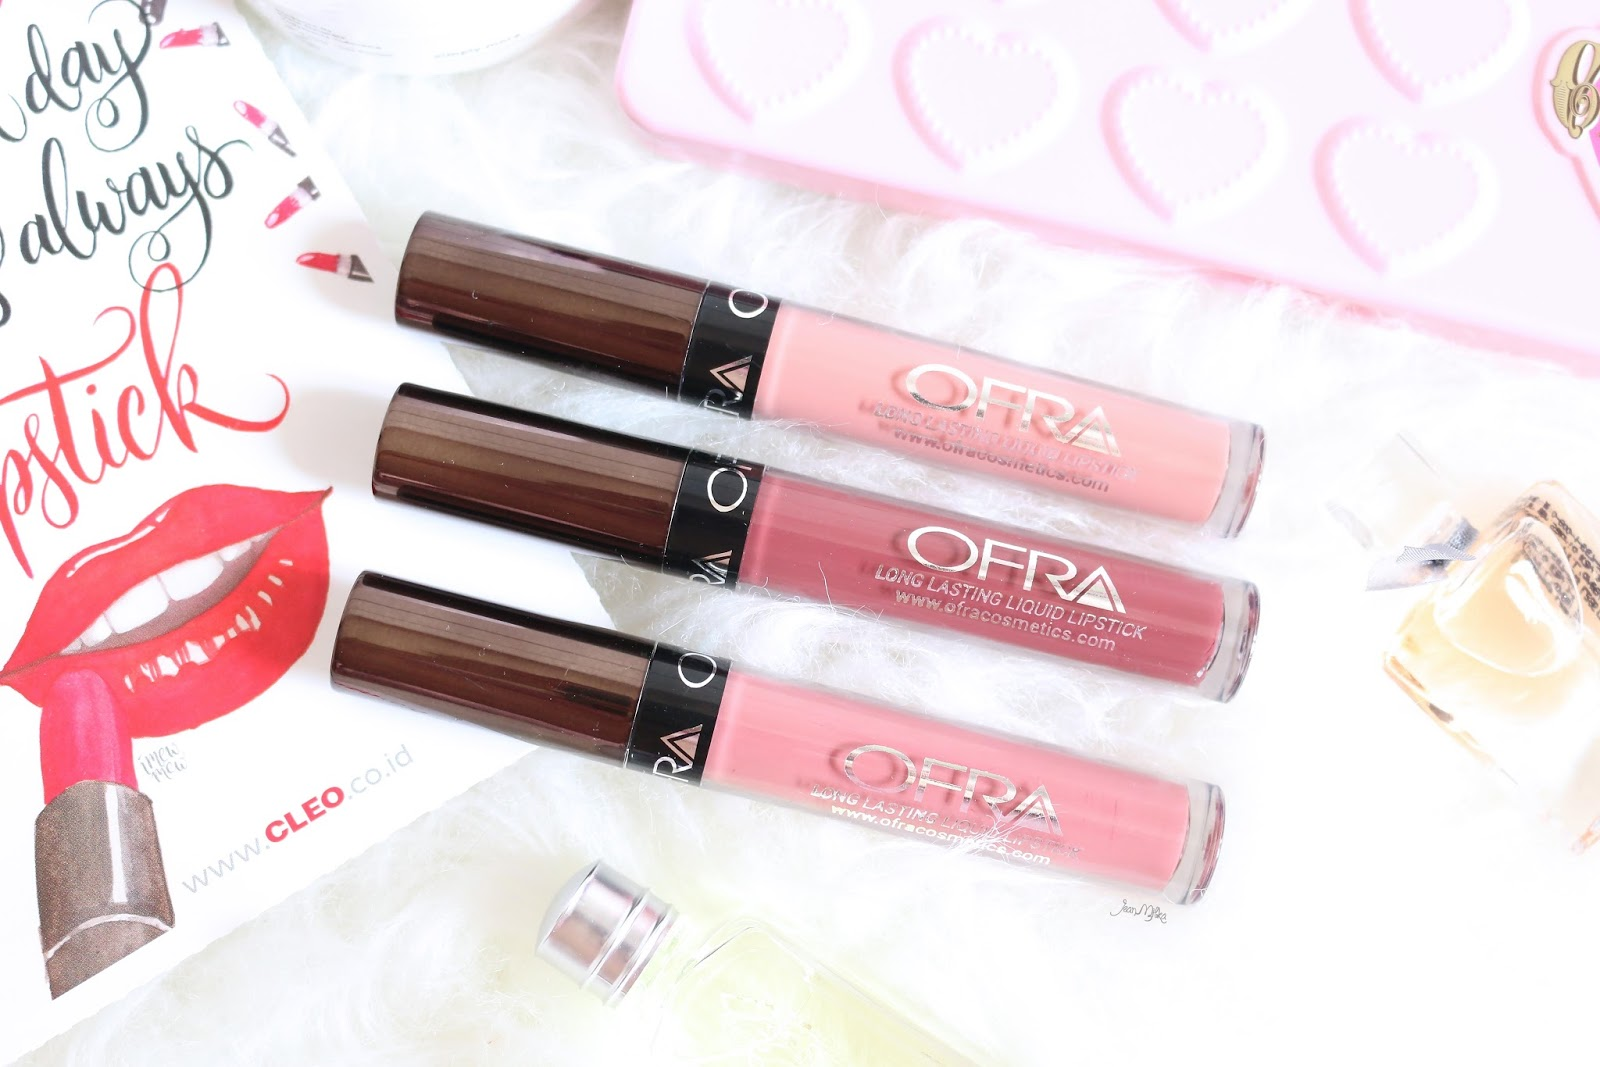 ofra x manny, ofraxmanny, ofra manny, ofra x manny mua, ofra, ofra cosmetics, ofra liquid lipstick, liquid lipstick, product review, swatches, beauty blog